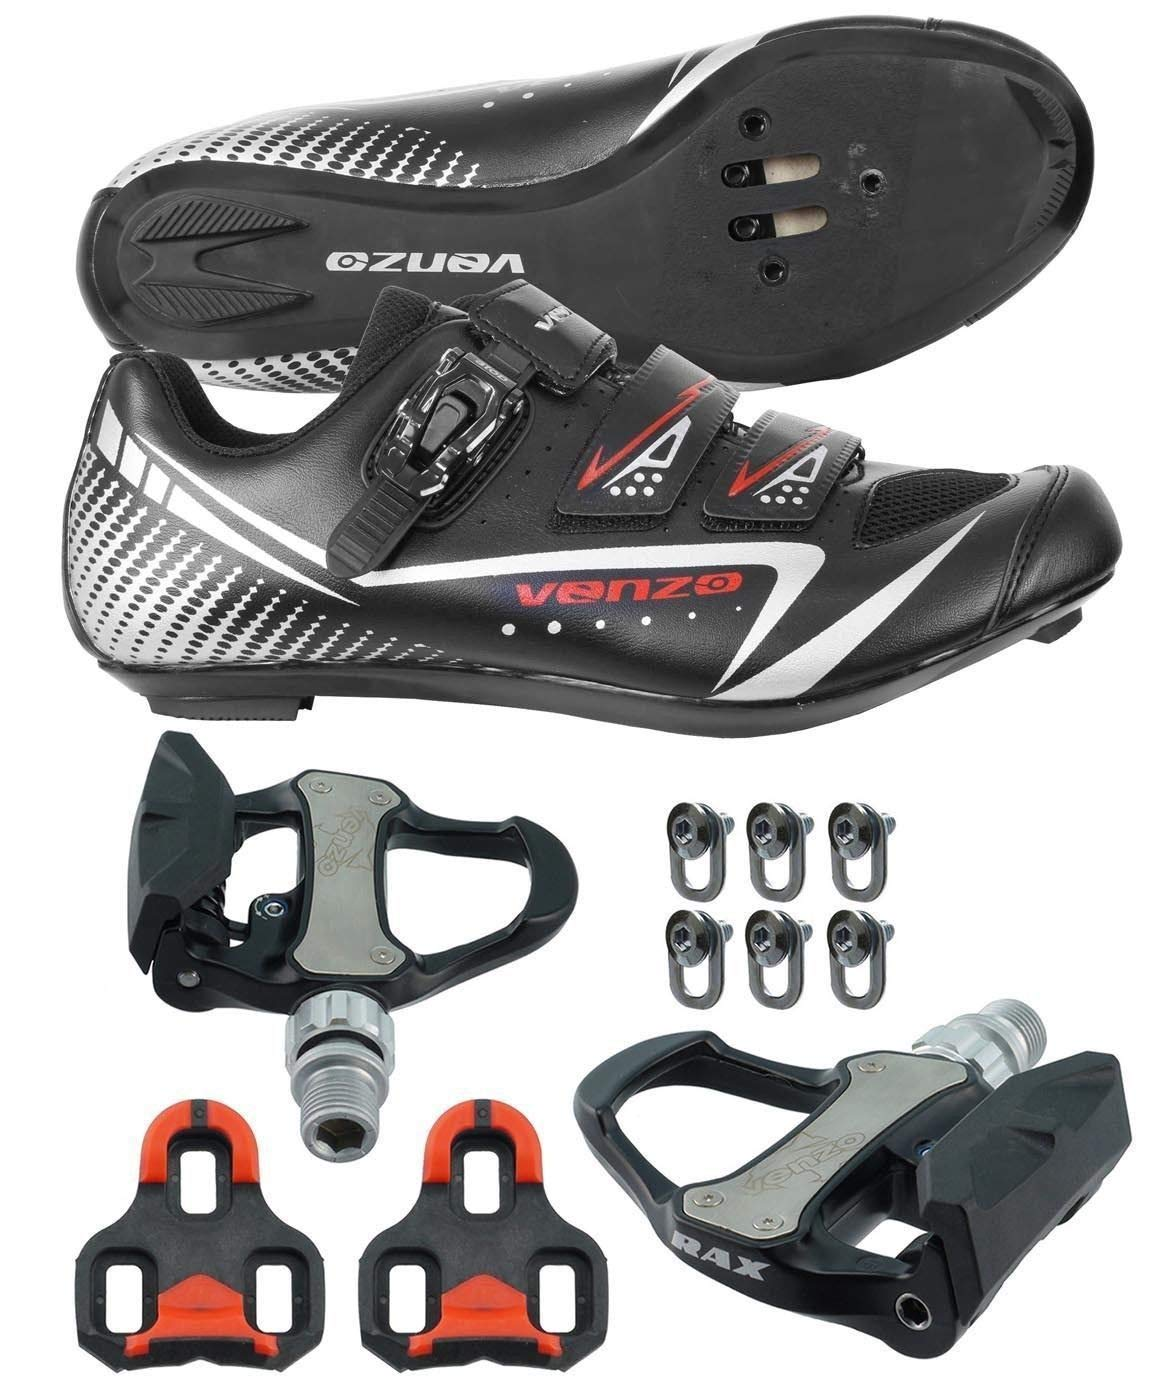 Venzo Road Bike Cycling Shoes Pedals Cleats for Shimano SPD SL Look Size 43